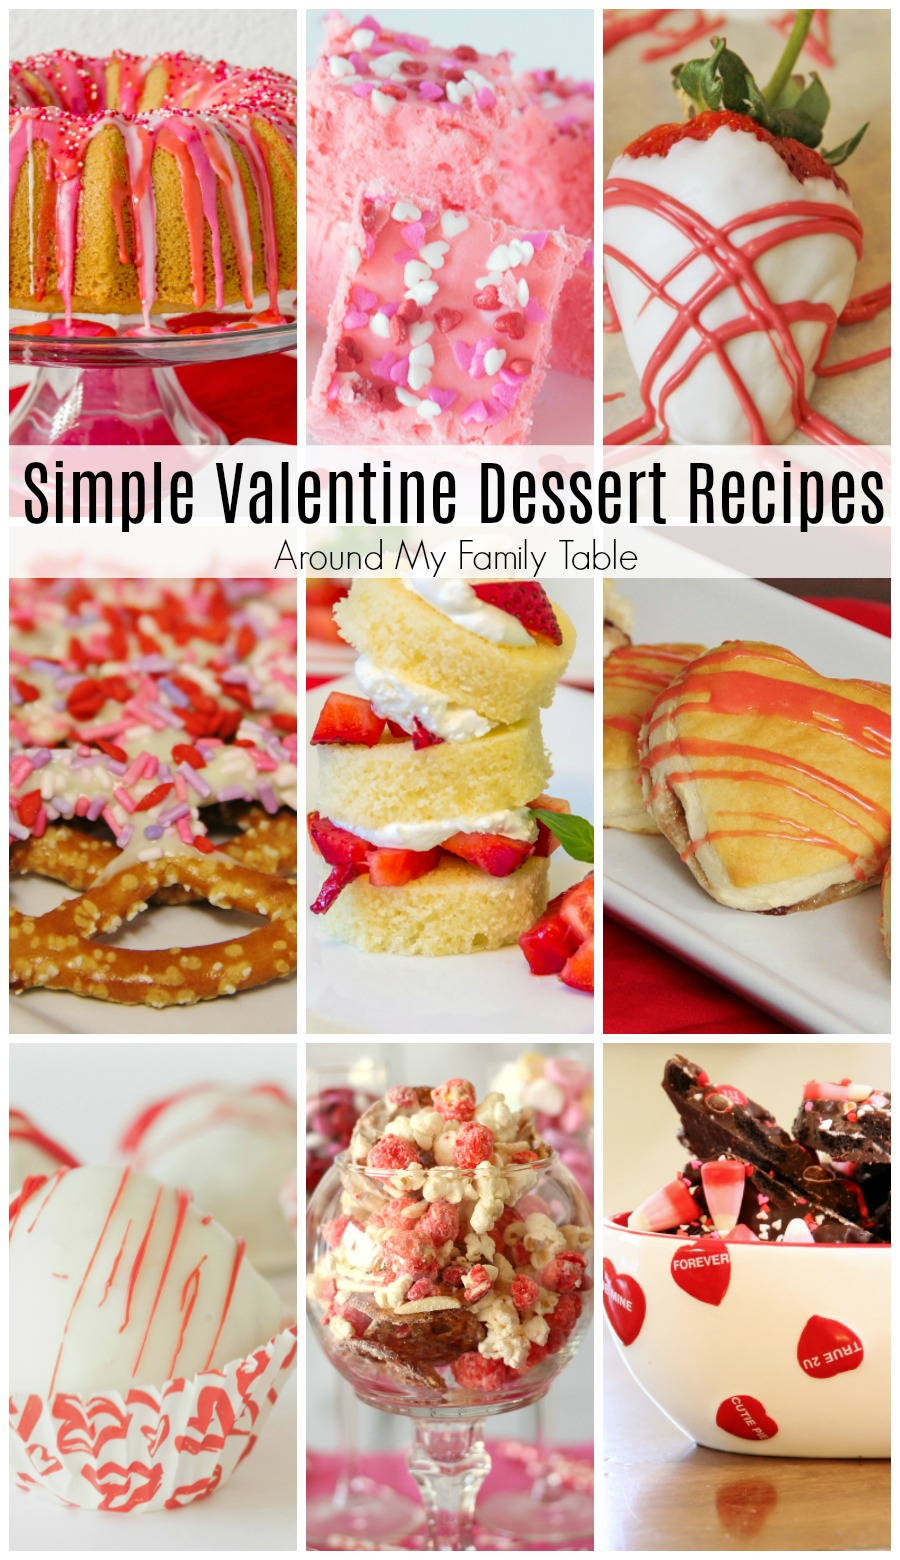 Valentine's Day is right around the corner and this list of Simple Valentine Dessert Recipes is sure to have the perfect treat to share with your hunny.   #valentinesday #desserts #valentinesdaydesserts via @slingmama